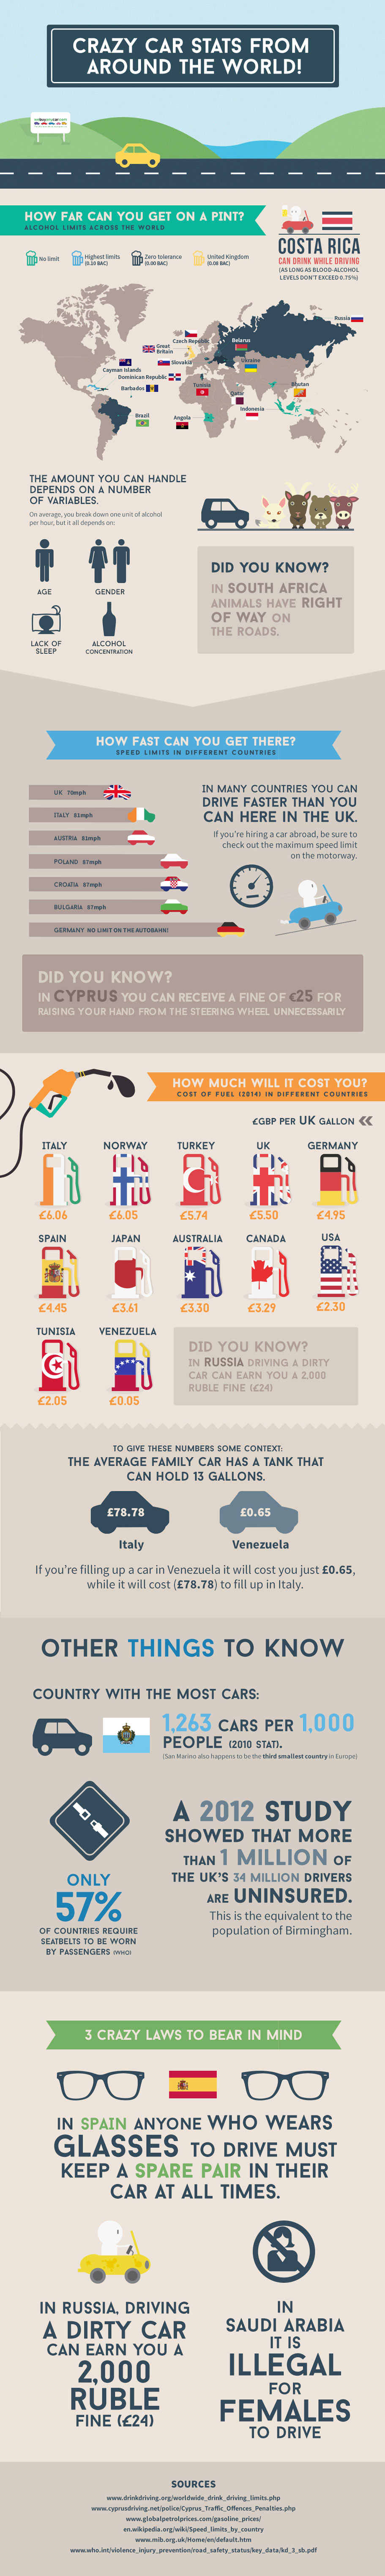 Crazy-Car-Stats-From-Around-the-World